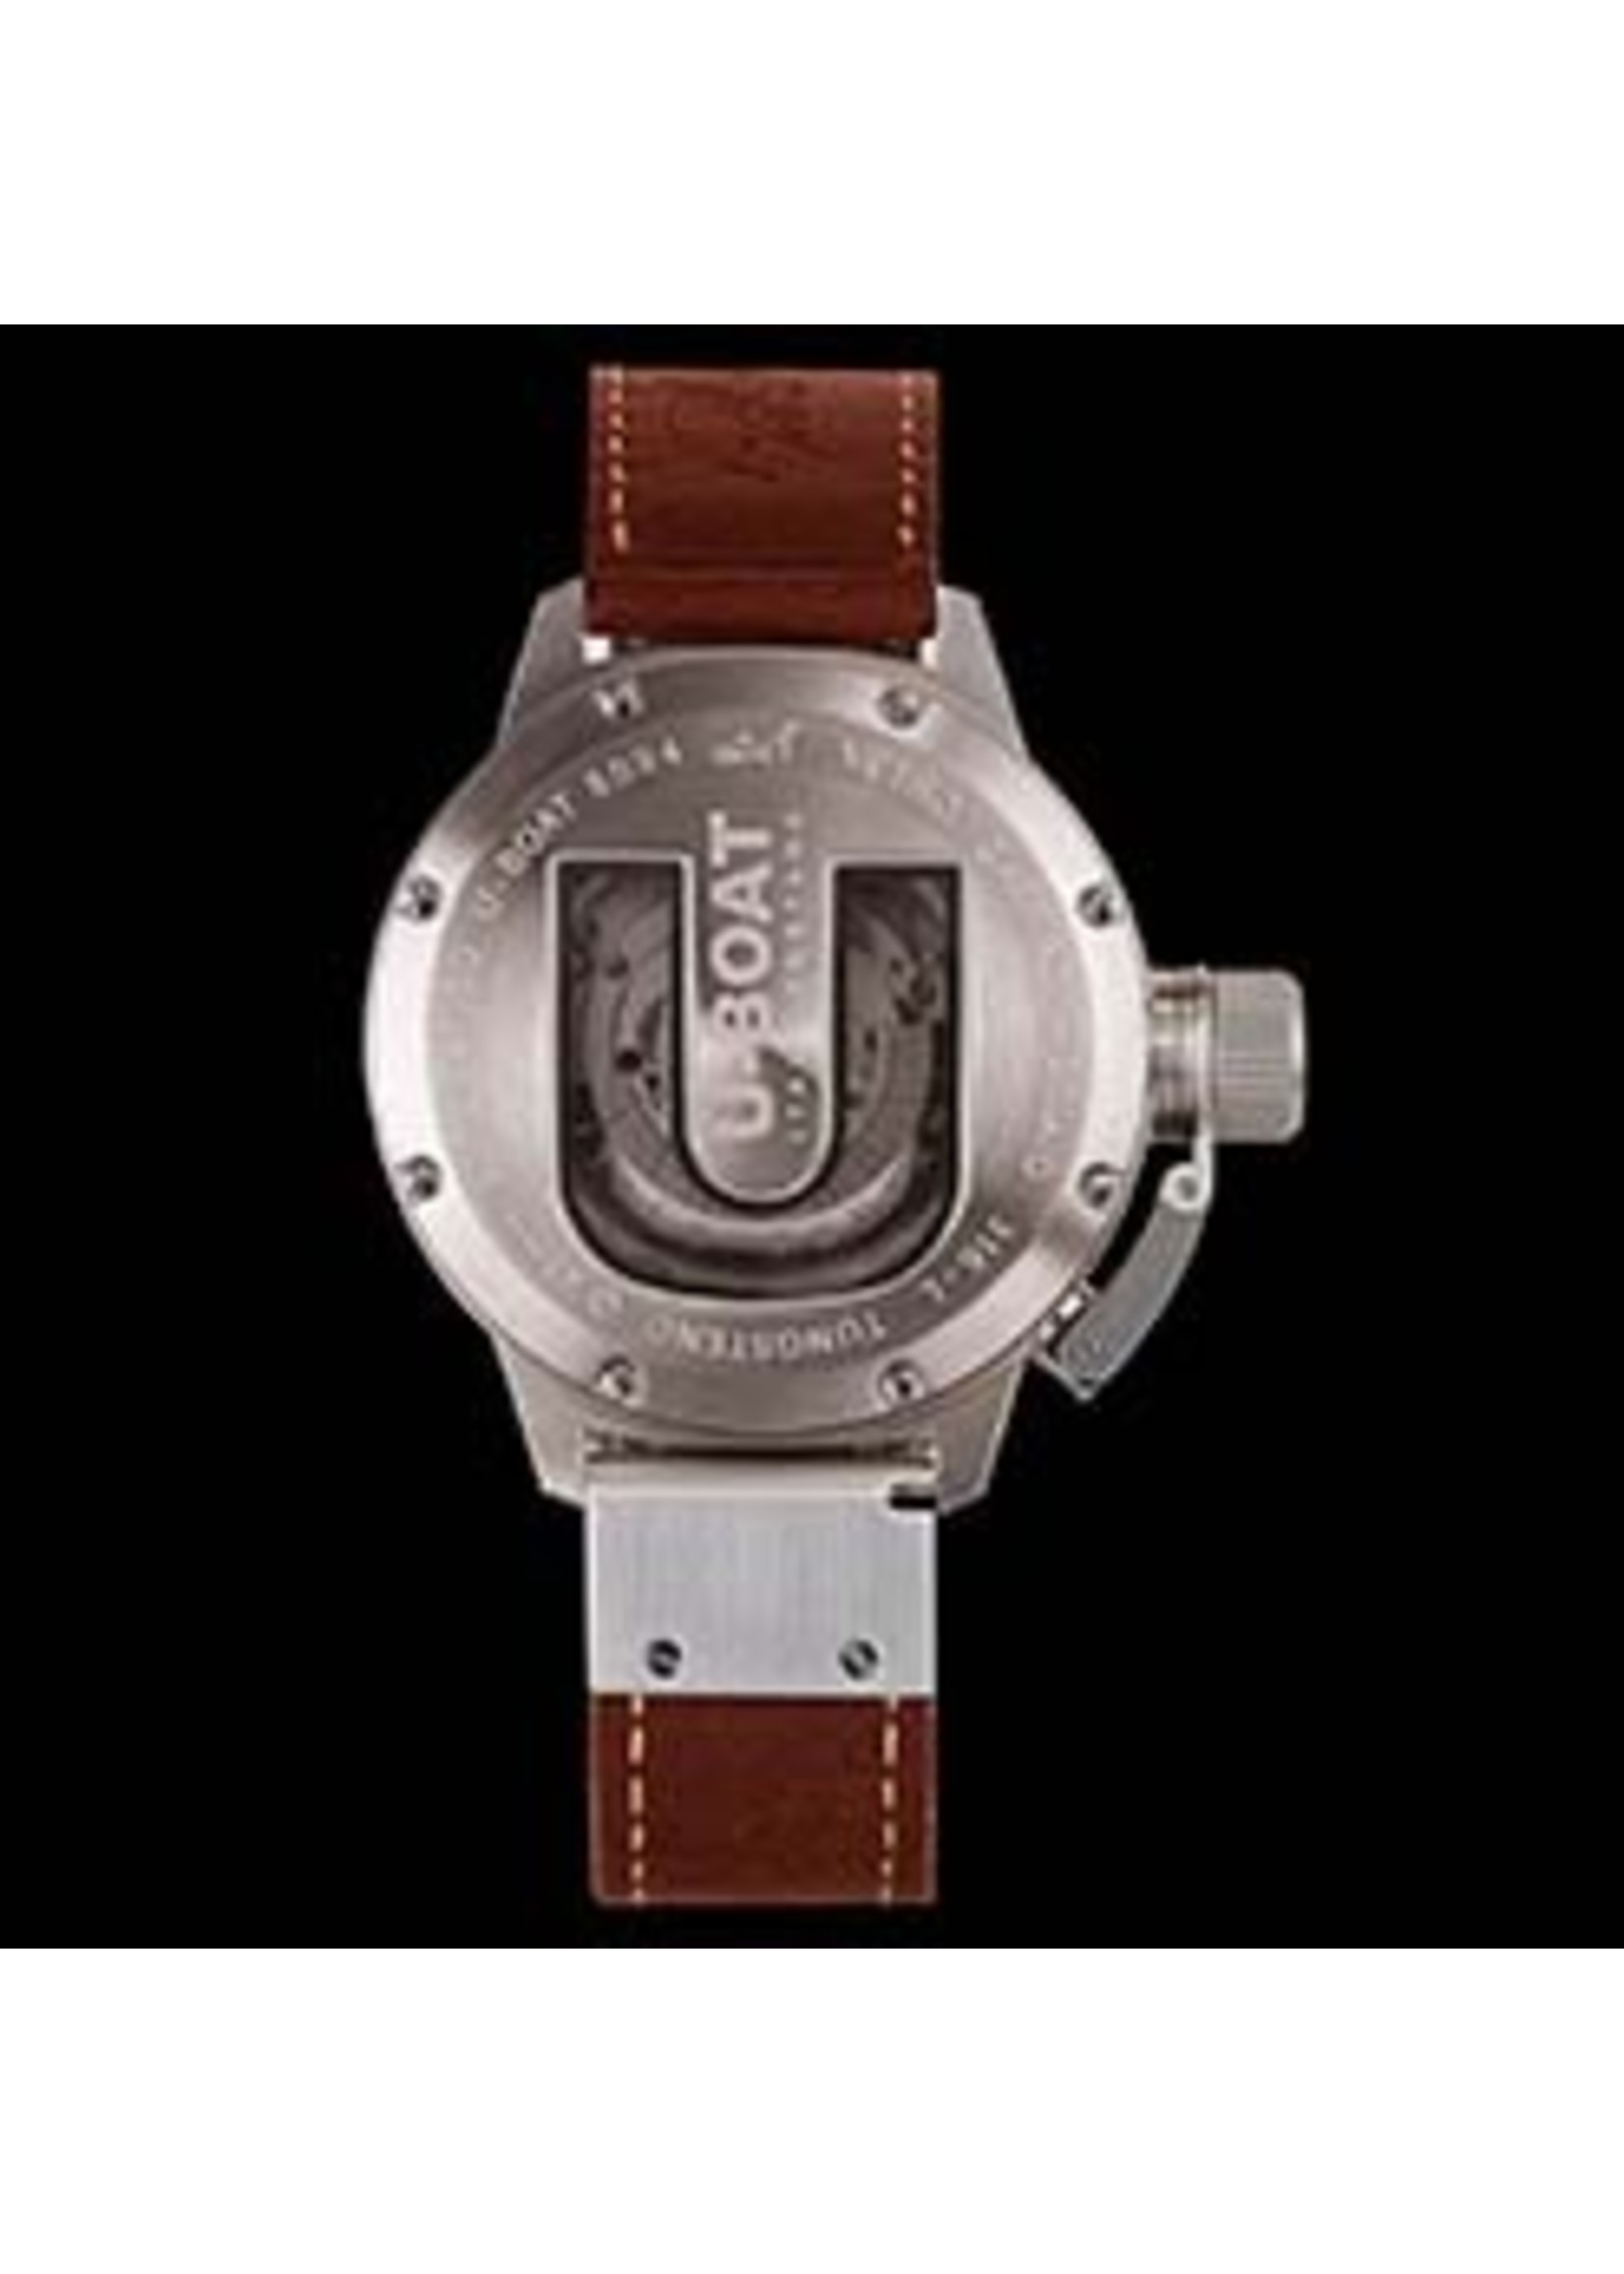 U-BOAT U-BOAT CLASSICO 50 TUNGSTENO AS 2